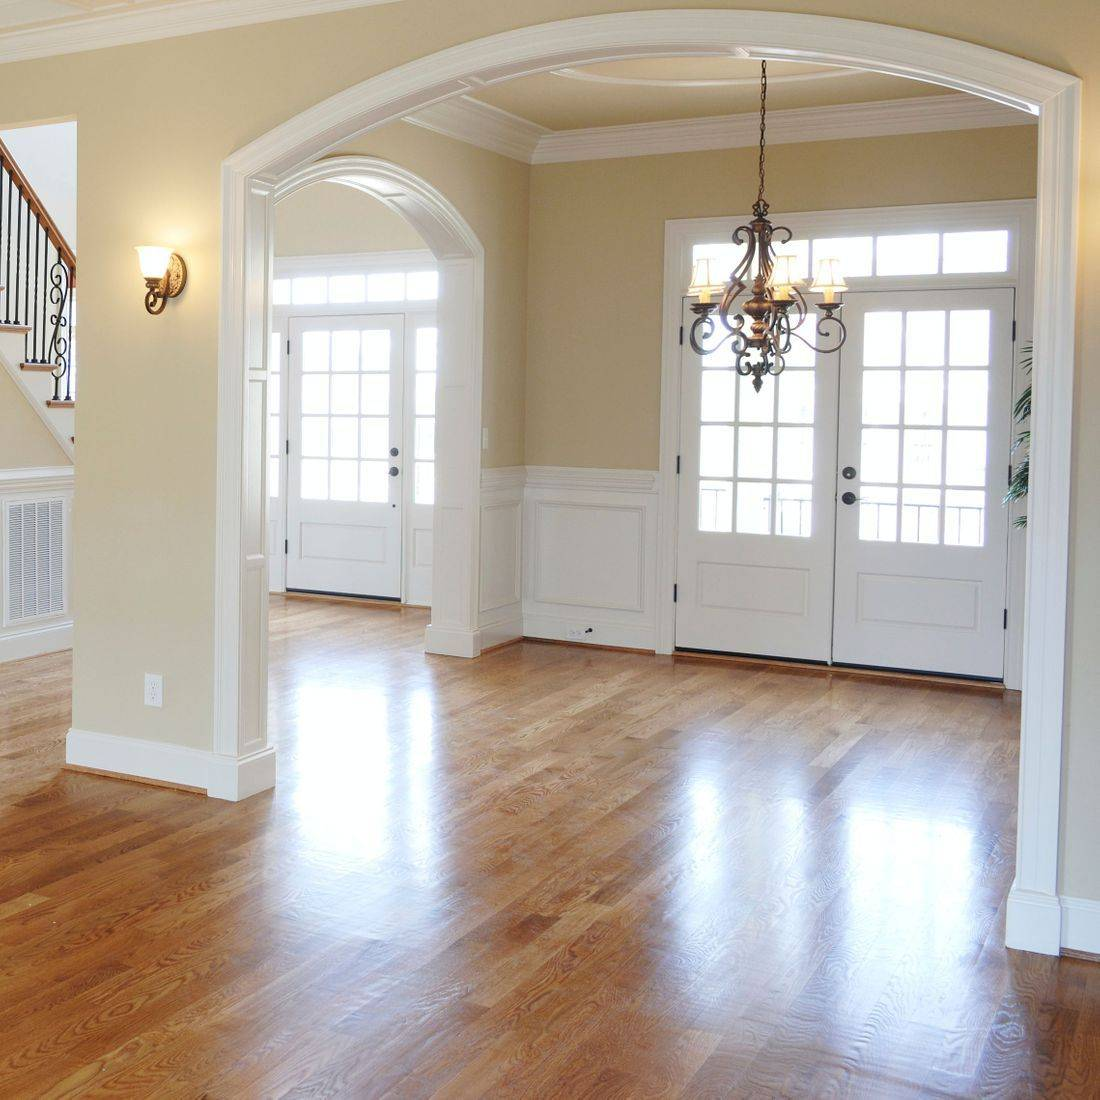 Luxury Hardwood Floors in Entry